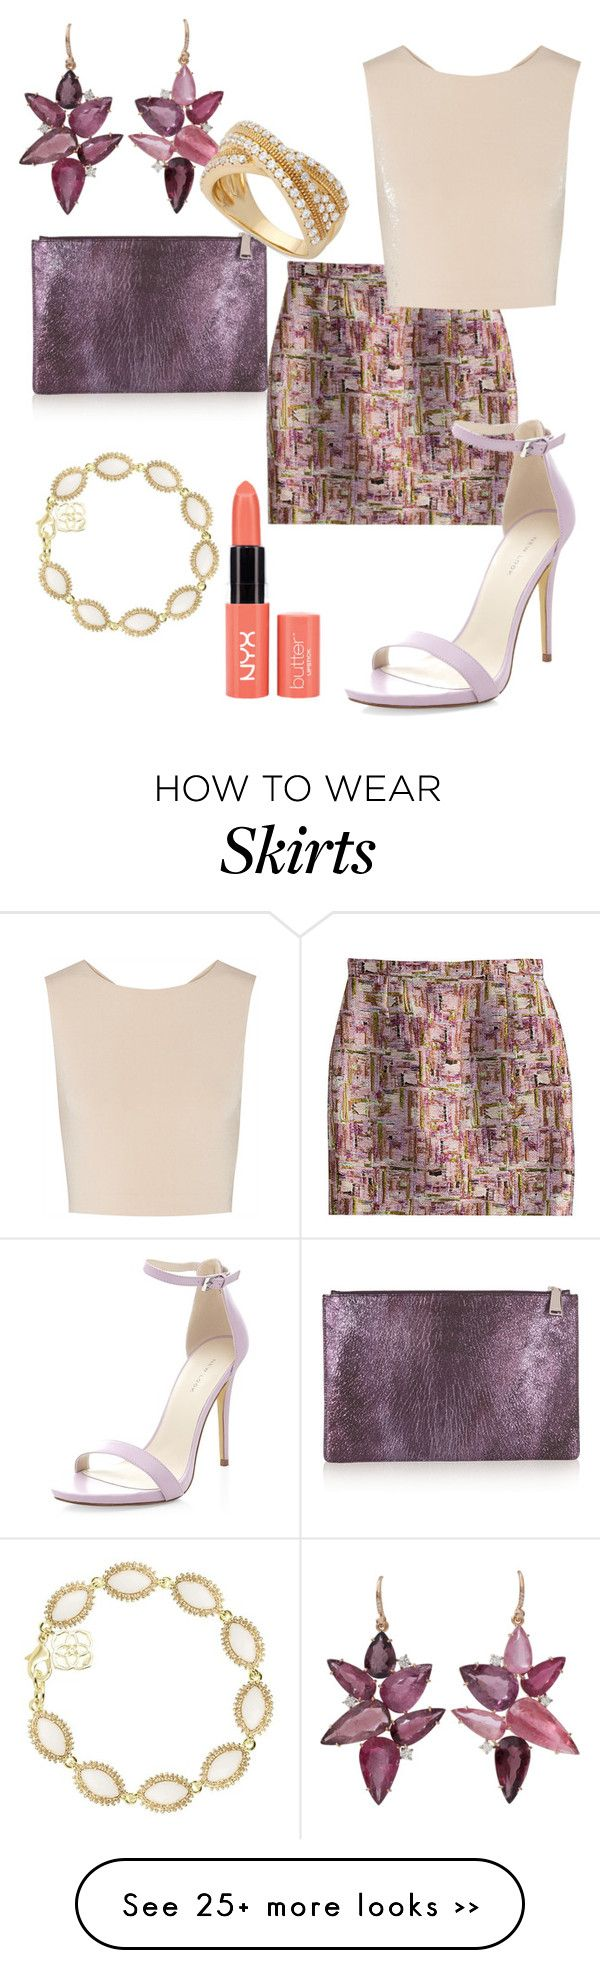 """""""Vintage Skirt"""" by lingling14 on Polyvore"""